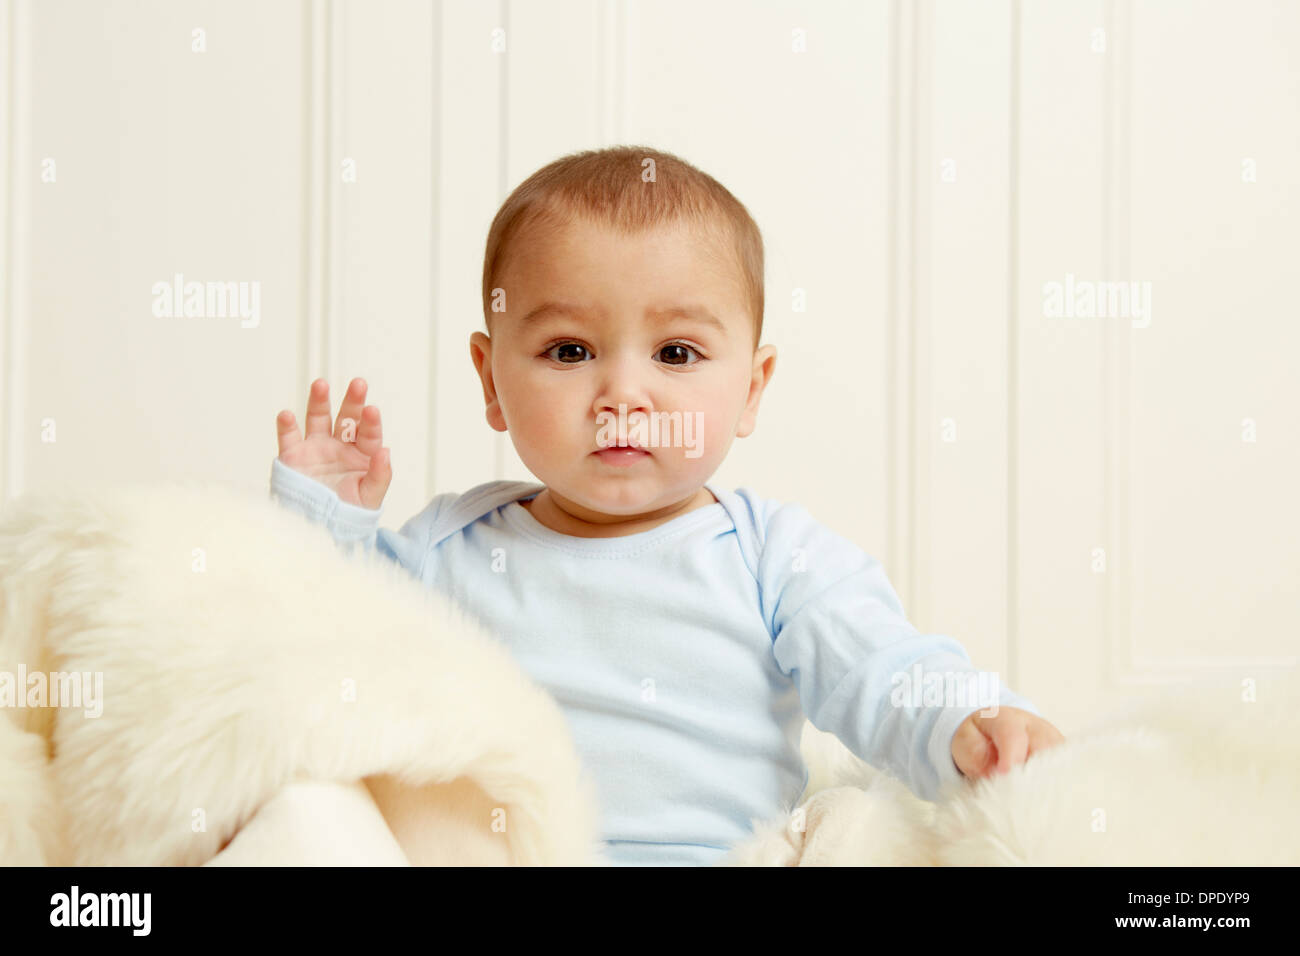 Baby sitting on sheepskin rug - Stock Image